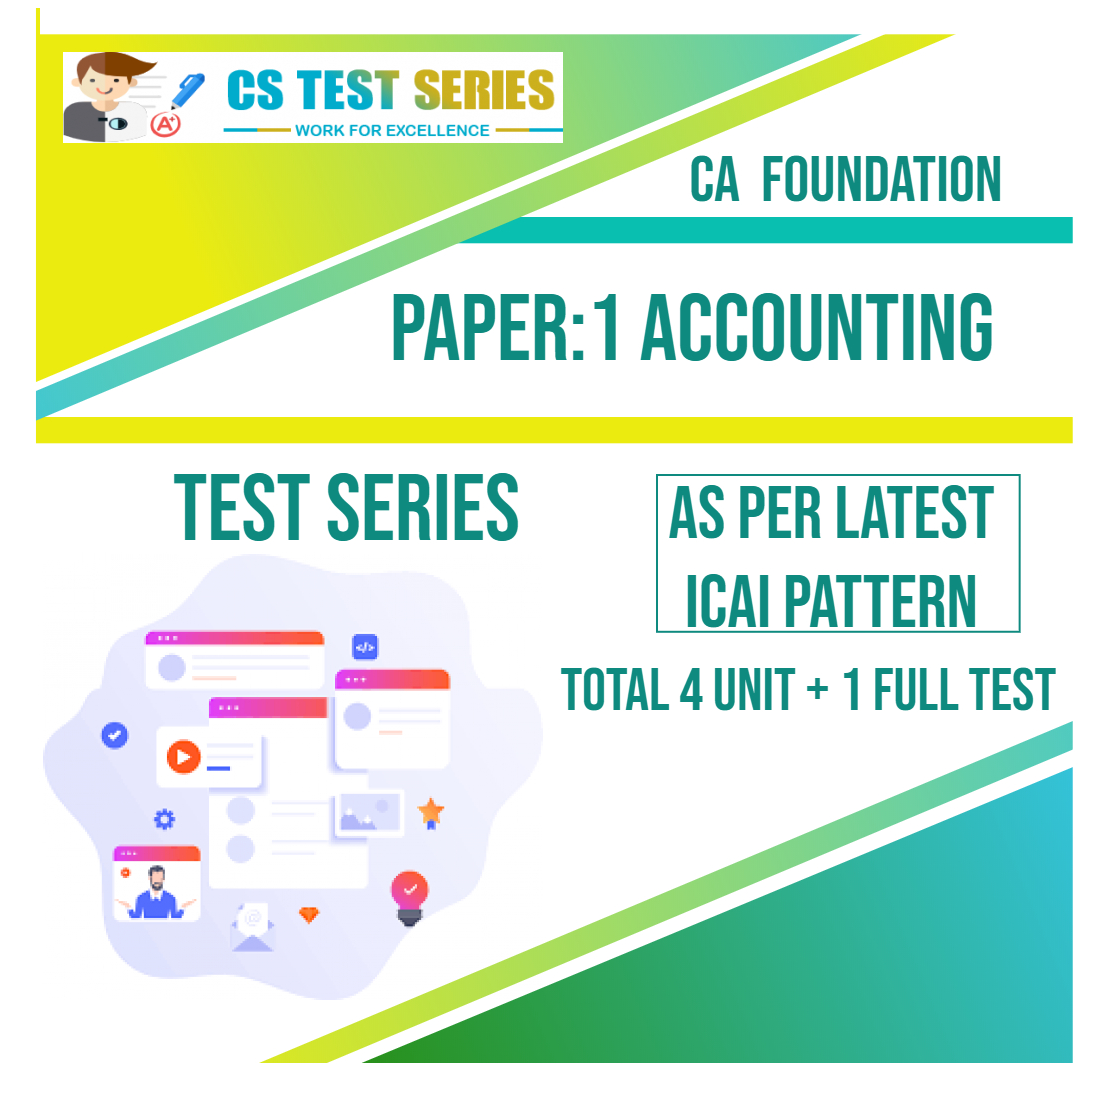 CA FOUNDATION PAPER:1 ACCOUNTING